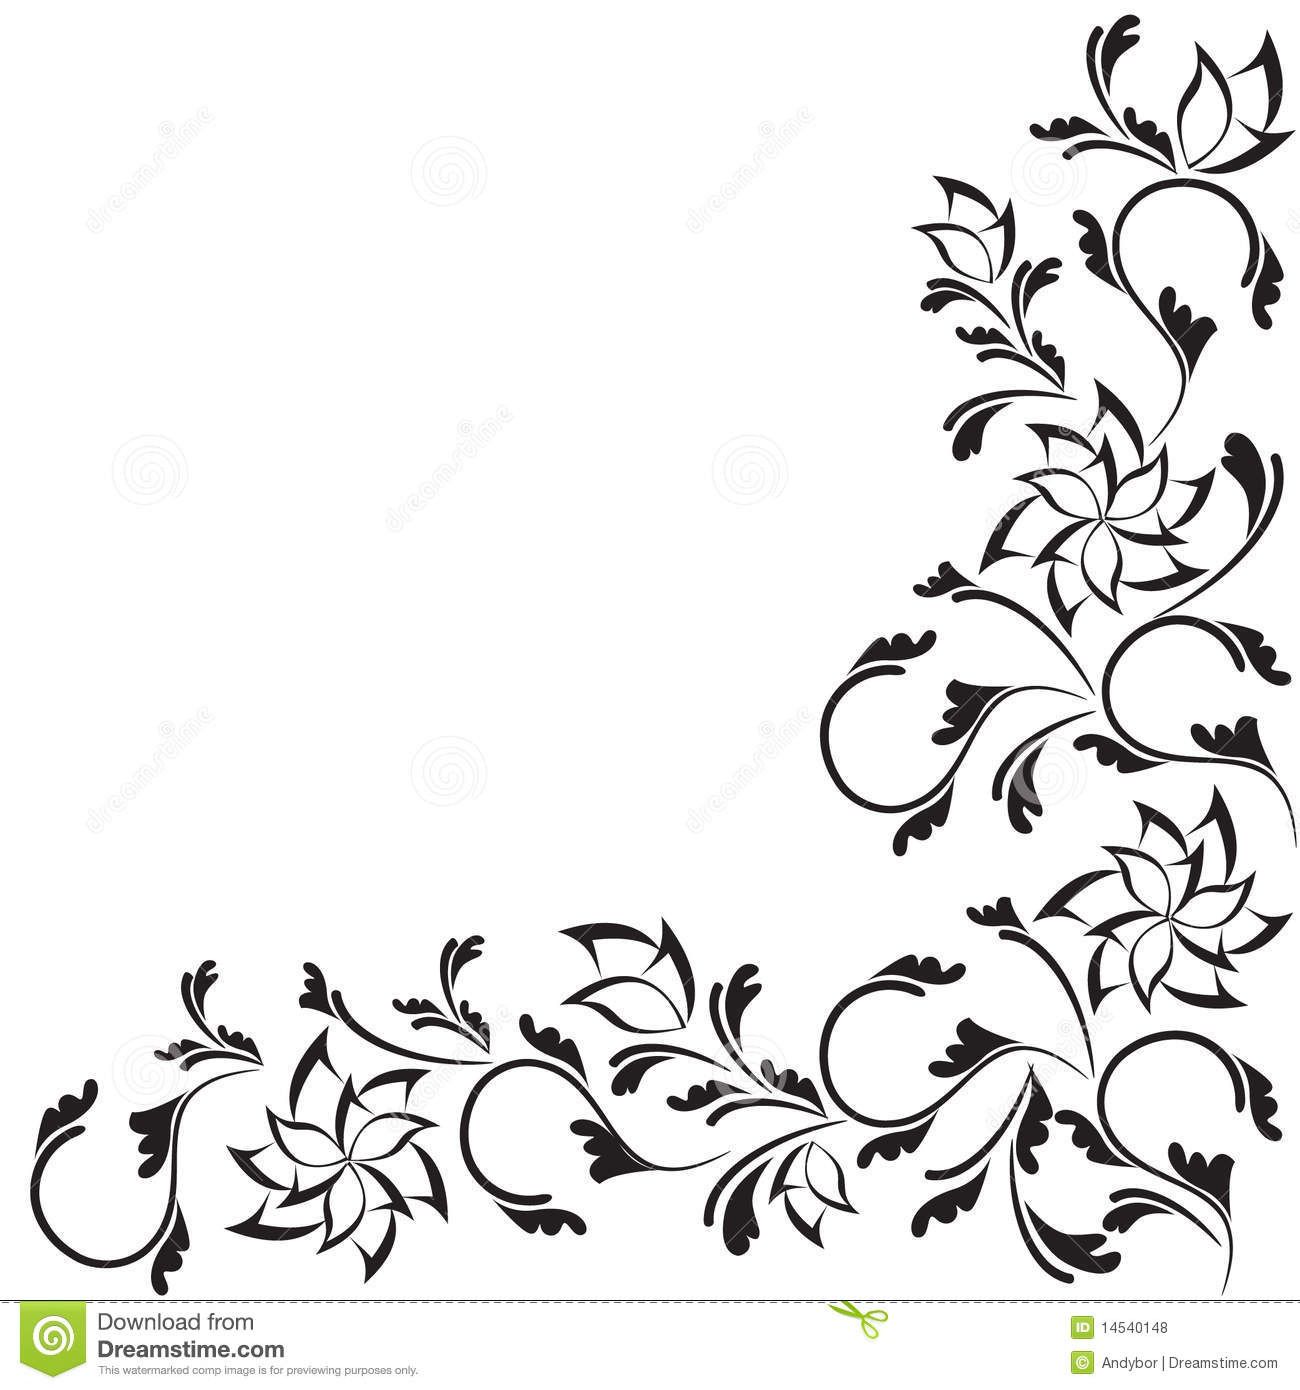 Black Ornate Floral Design Isolated On White Stock Vector